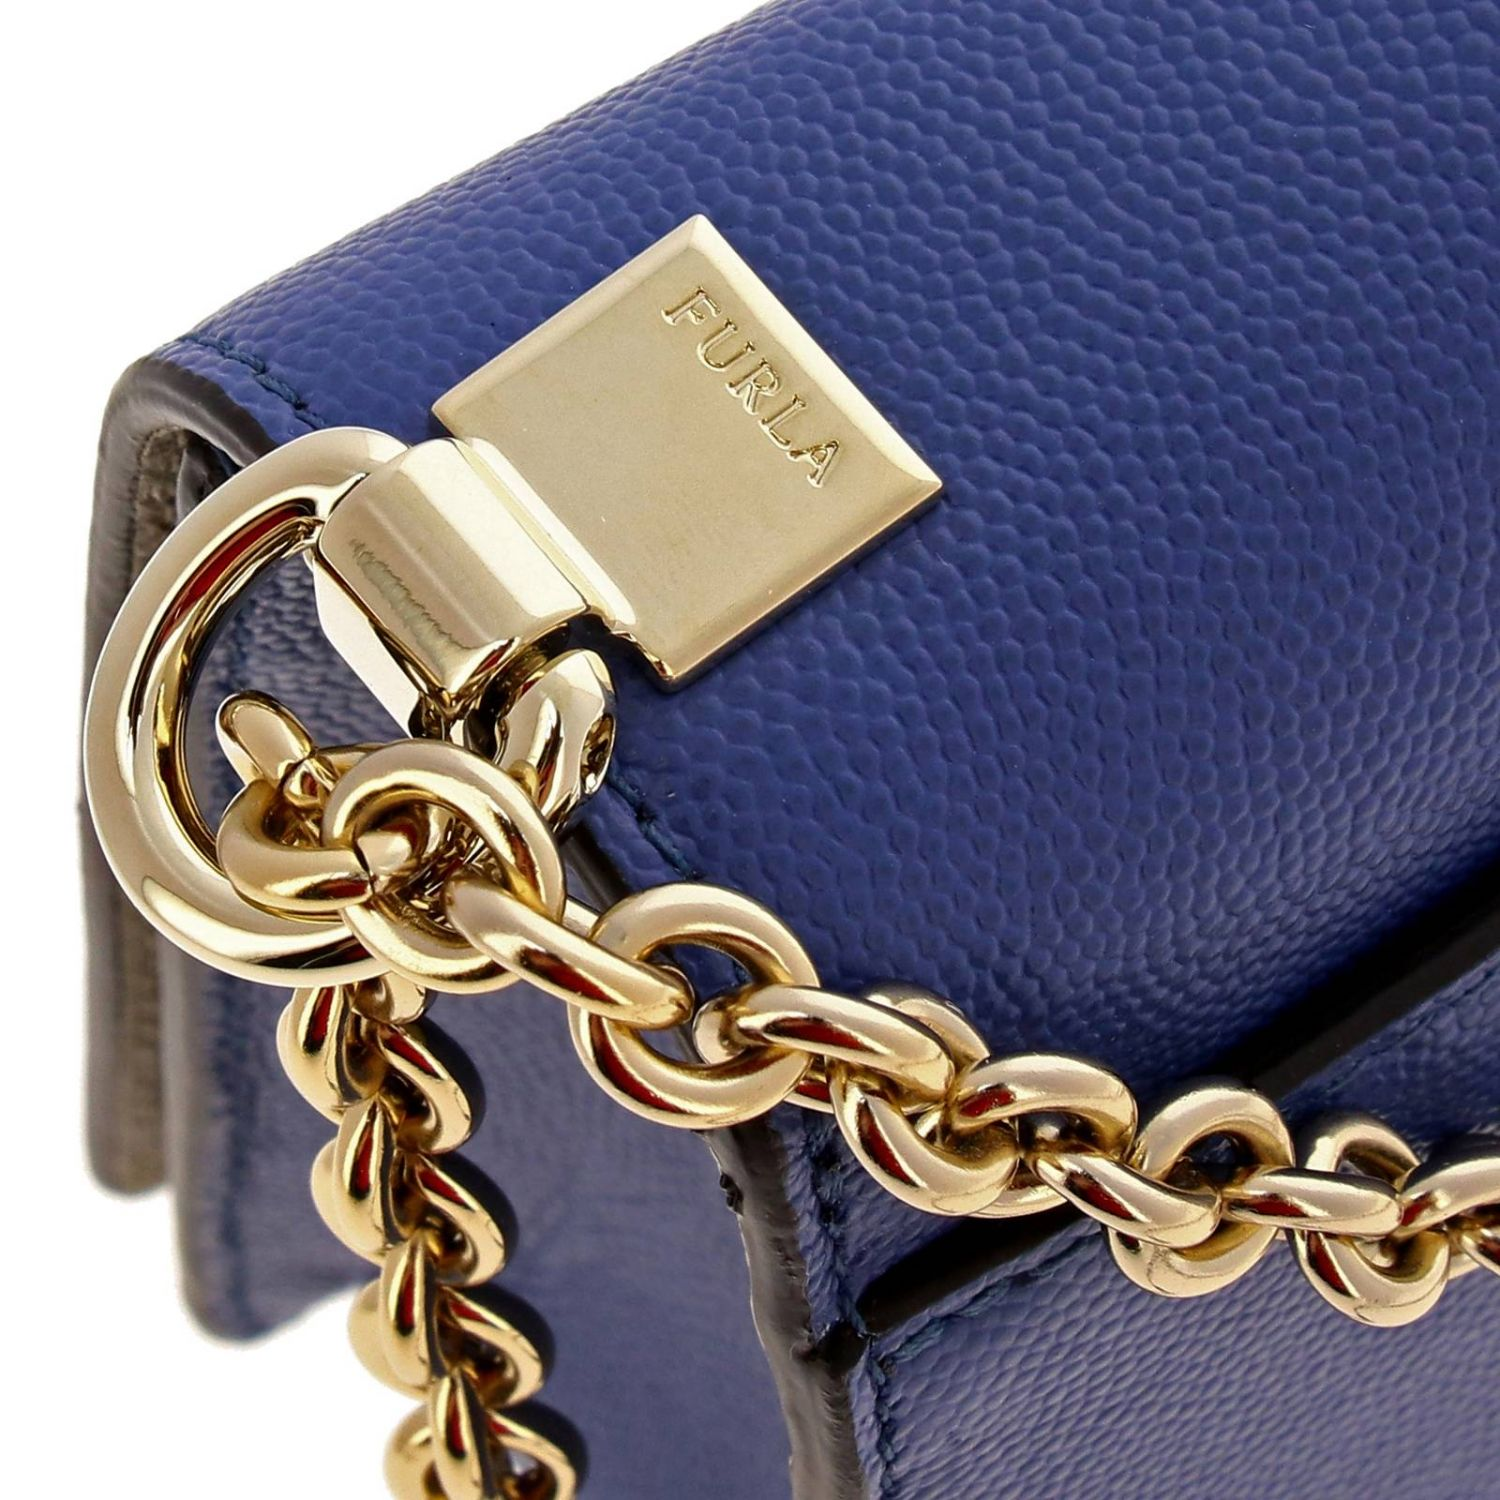 Mini bag Furla: Mimì Furla mini bag in textured leather with shoulder strap periwinkle 4